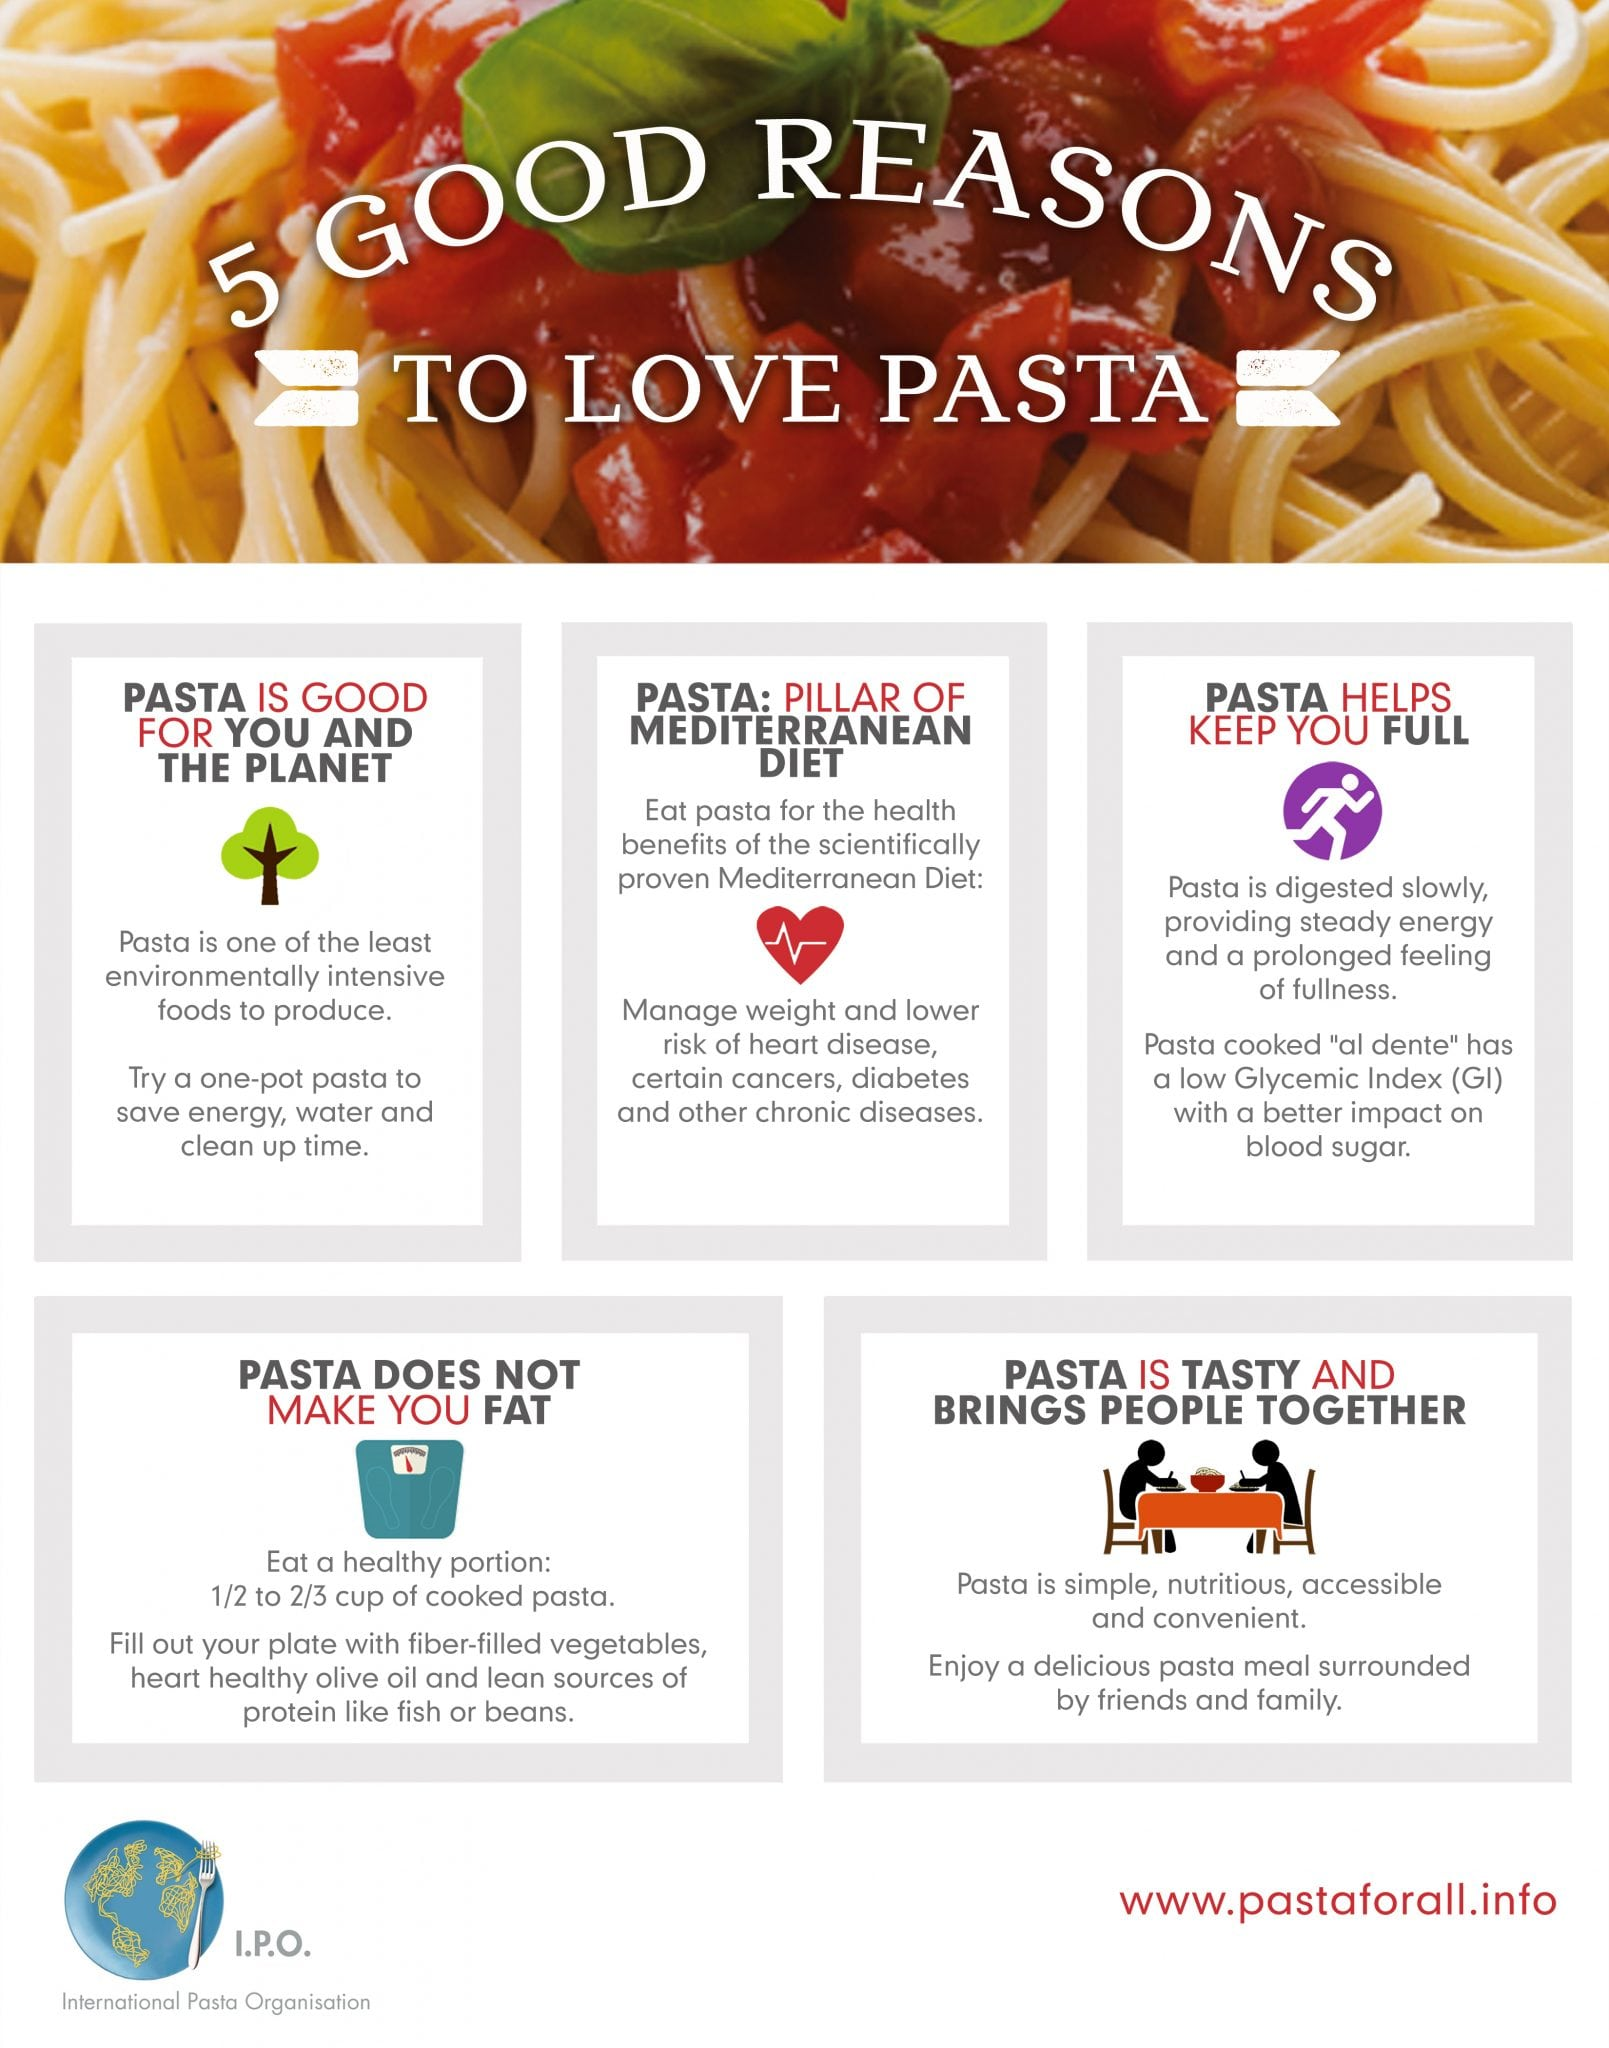 BEWARE OF SENSATIONAL HEADLINES – PASTA FITS INTO A HEALTHY LIFESTYLE